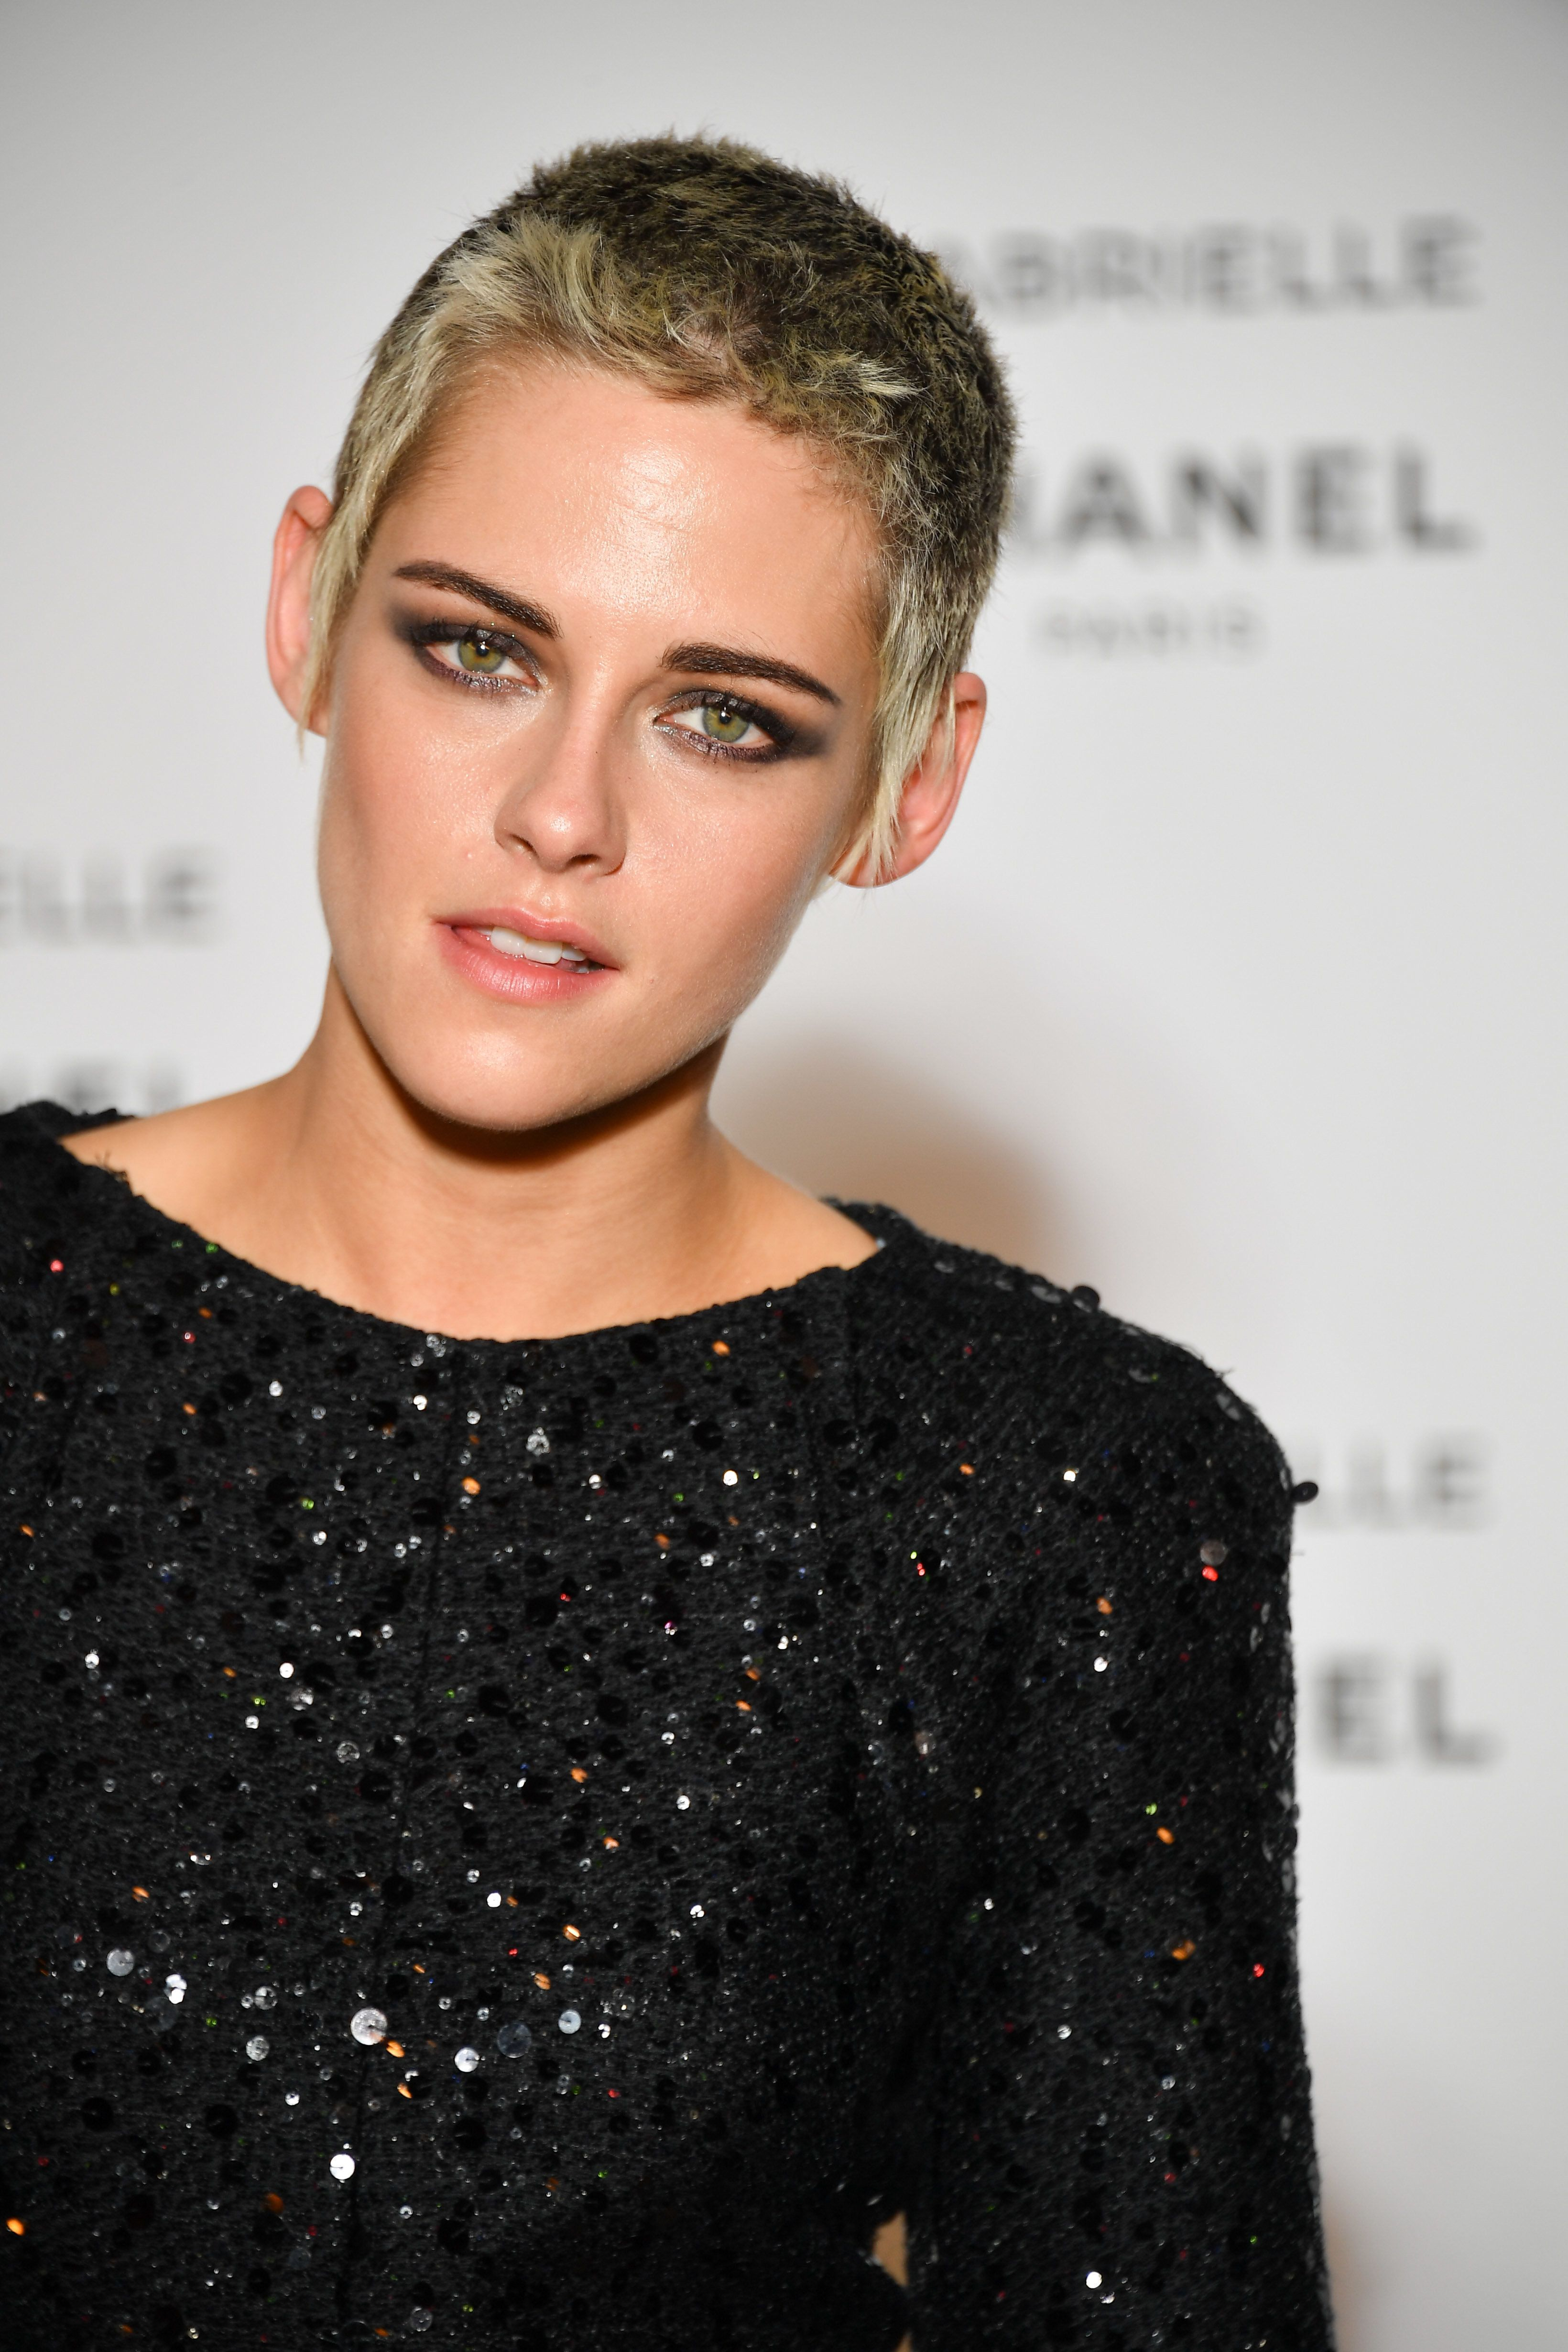 Kristen Stewart Wears An Item Of Clothing That Defies Description Kristen Stewart Hair Short Punk Hair Punk Hair